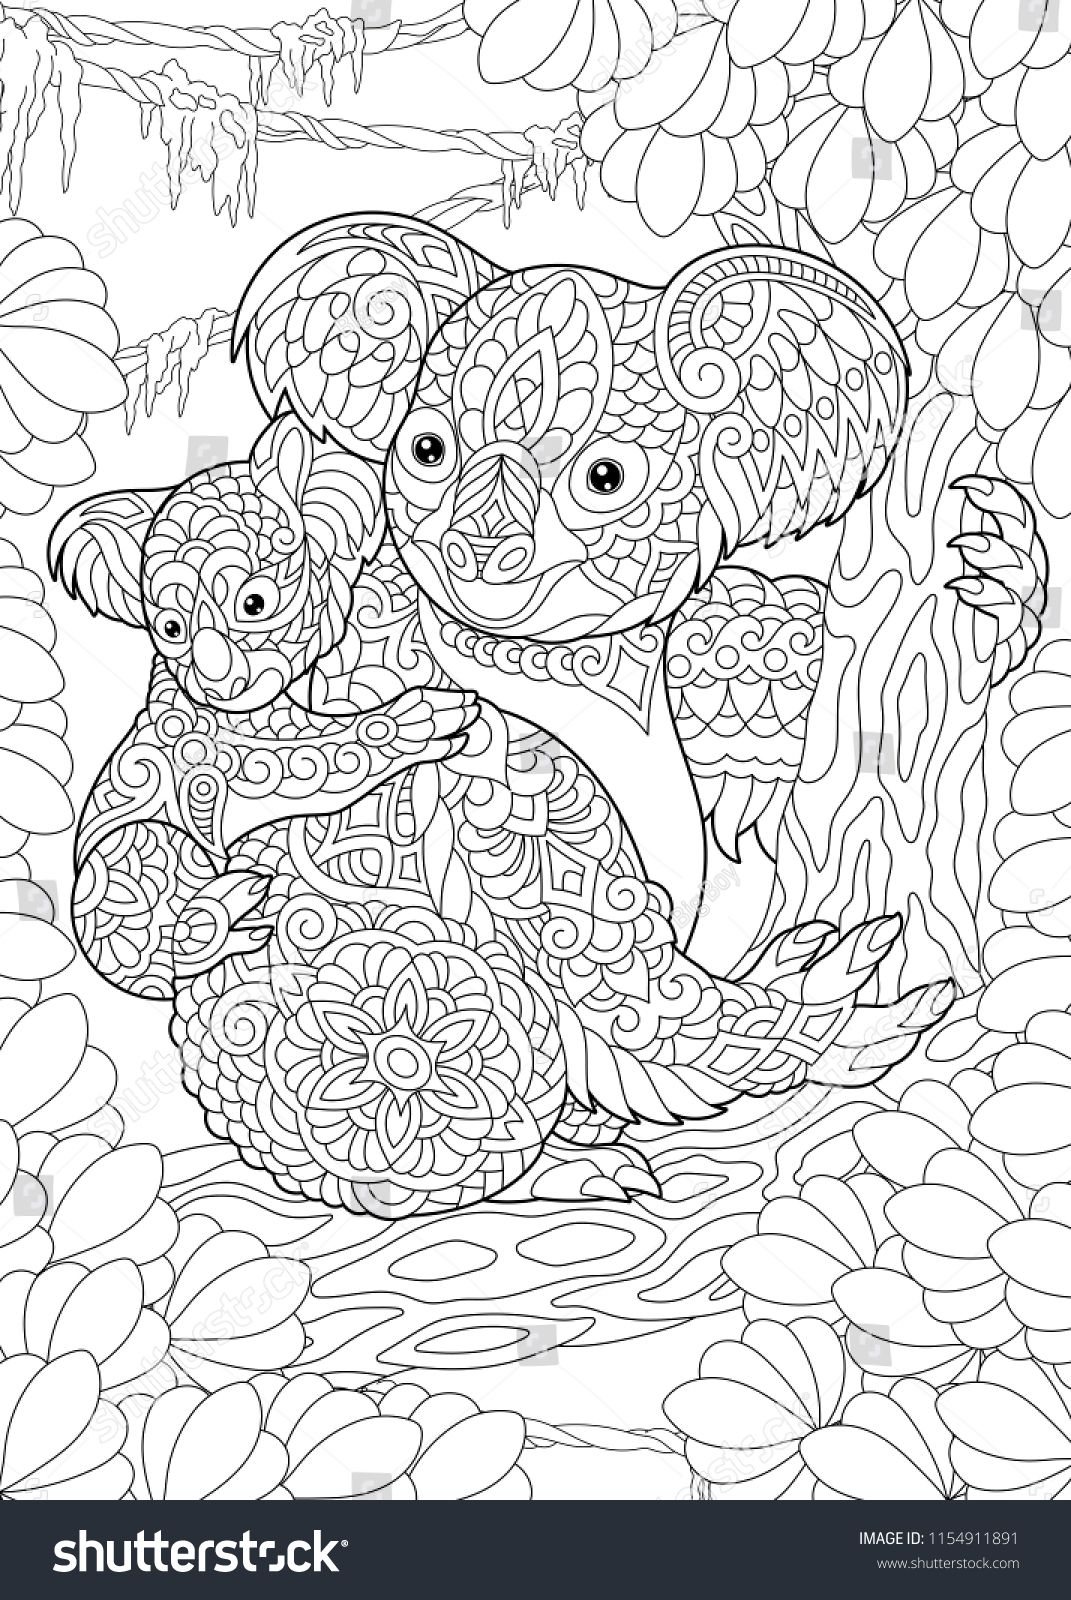 Coloring Page Coloring Book Colouring Picture With Koala Bears